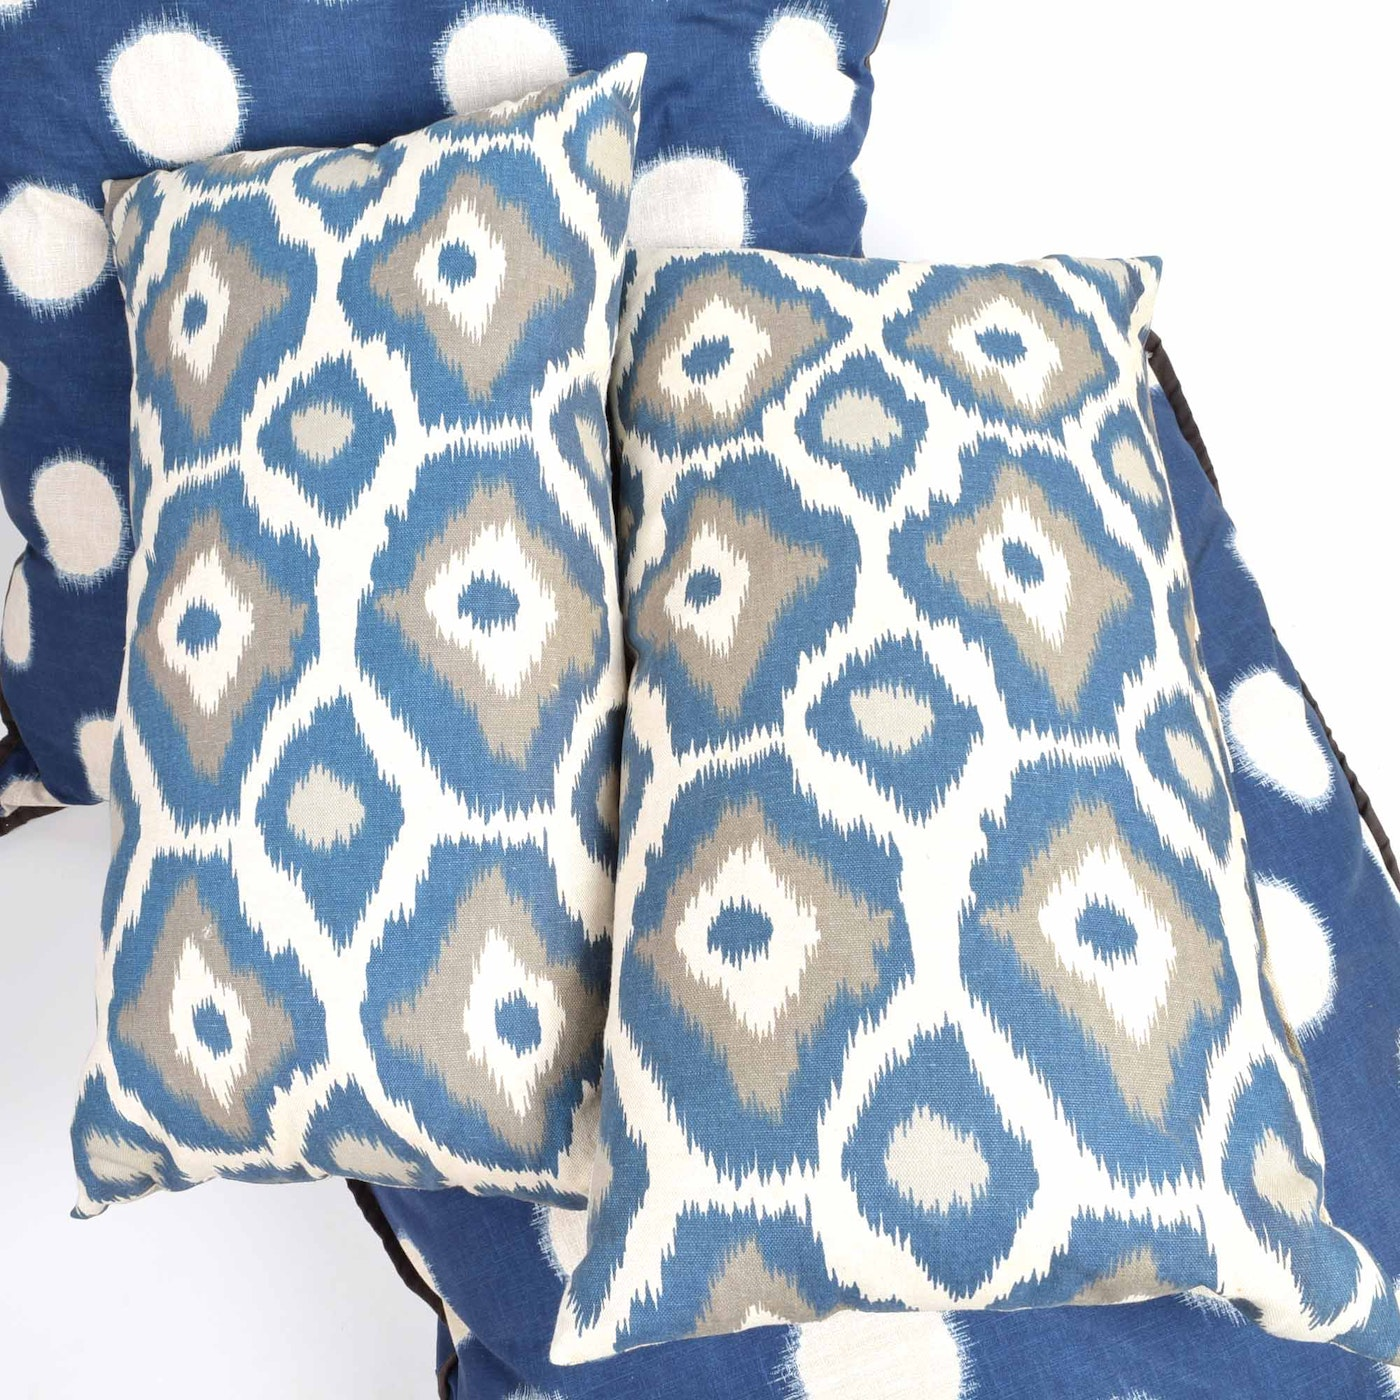 Throw Pillows With Navy Blue : Set of Navy Blue Decorative Throw Pillows with Carved Wooden Elephant Wall Plaque : EBTH